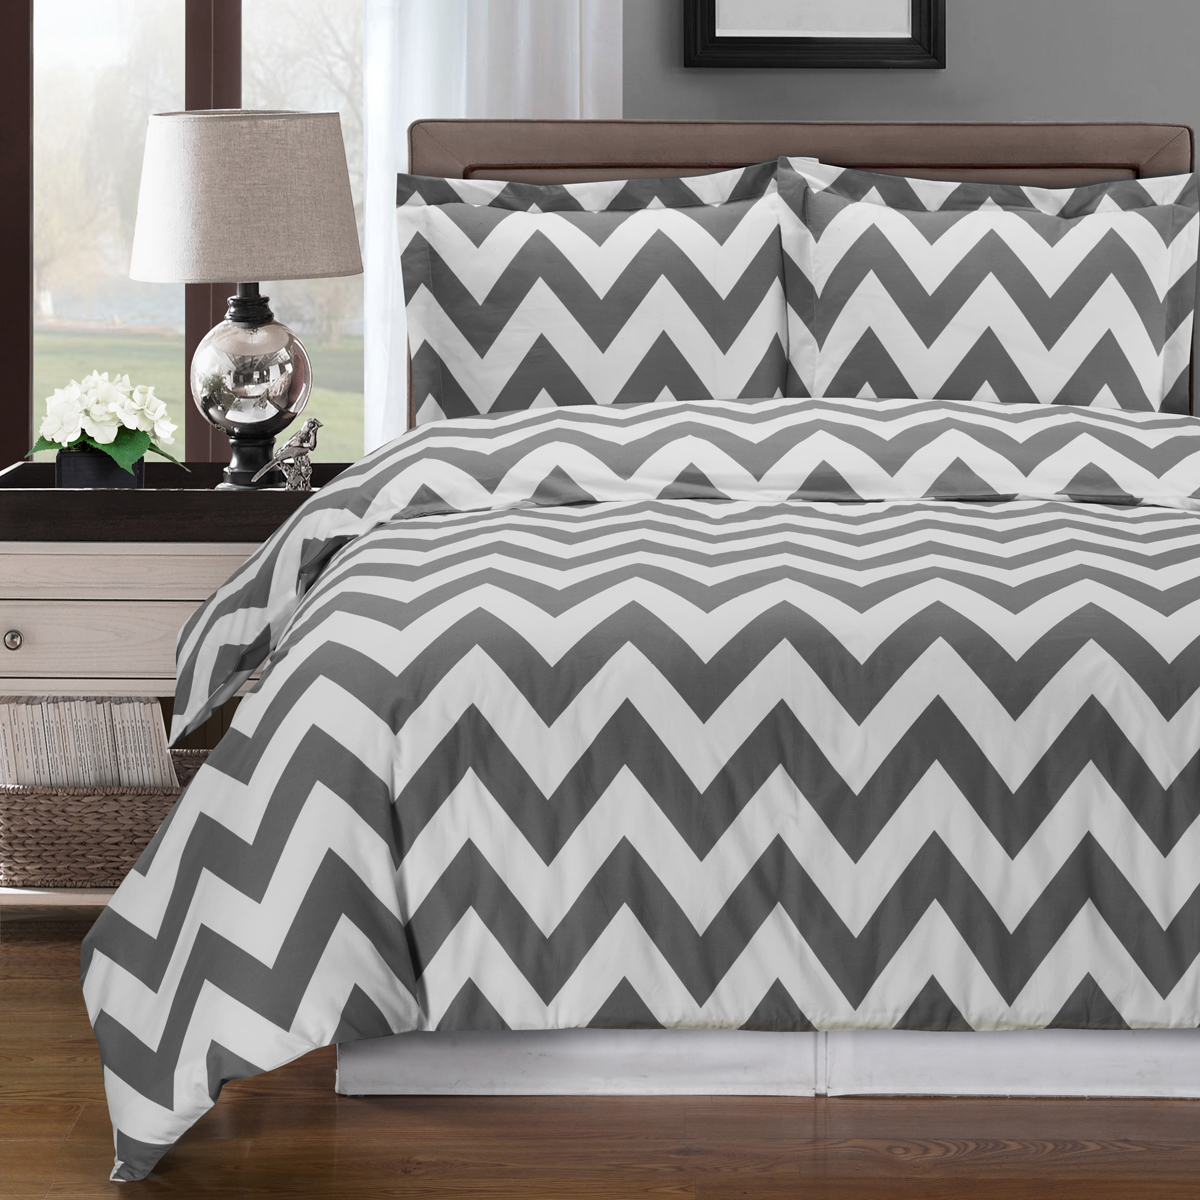 Royal Tradition Luxury 3-Piece Chevron Reversible Printed Cotton Duvet Covers and Shams Set